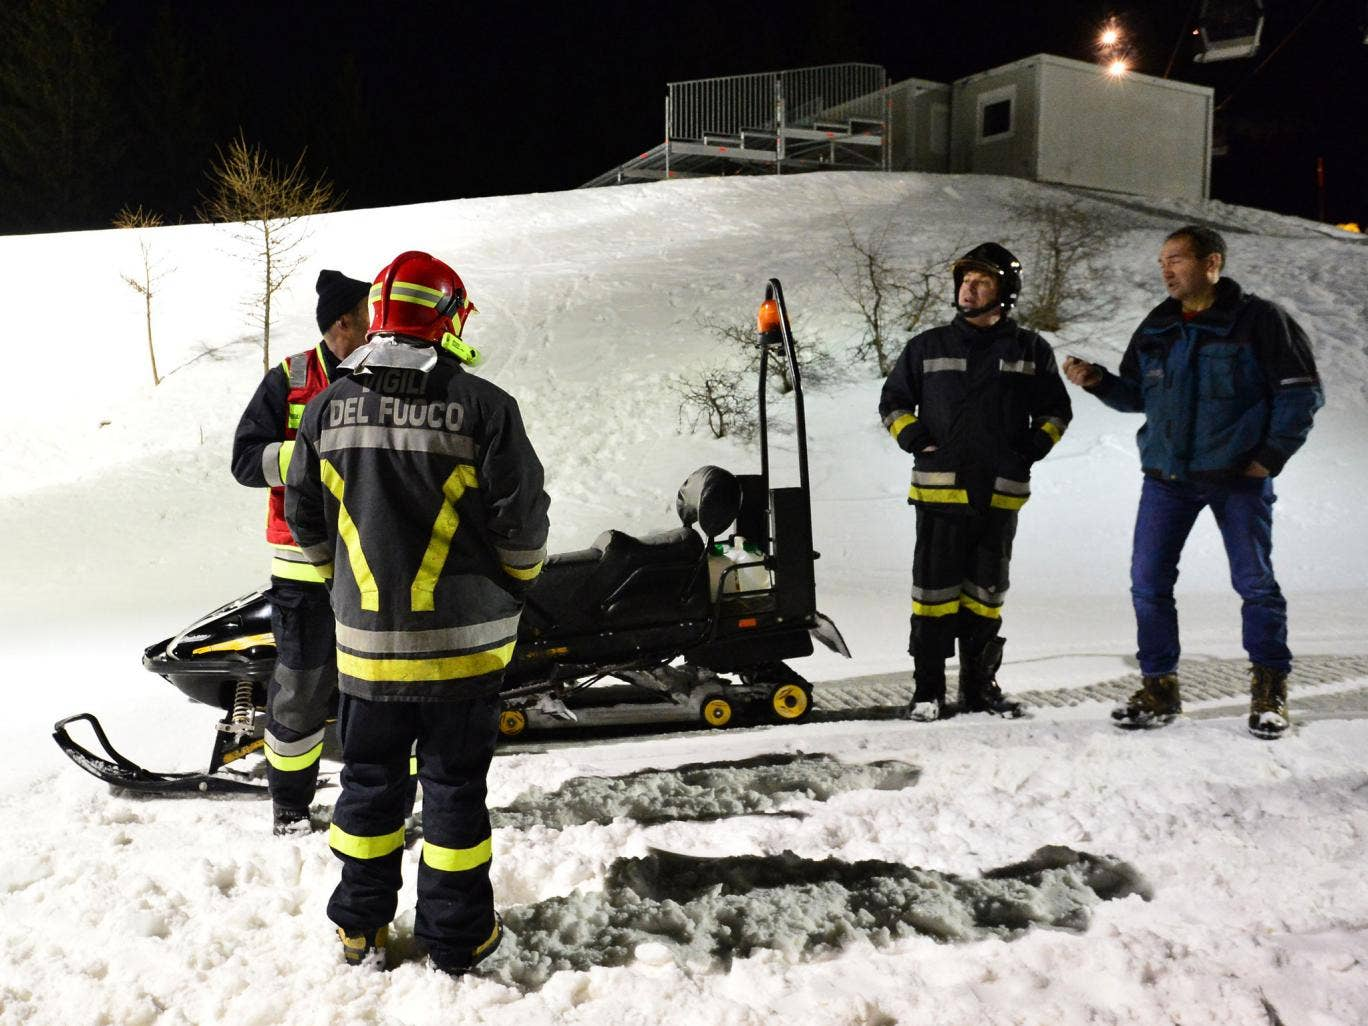 Rescuers on Mount Cermis, where the accident occurred